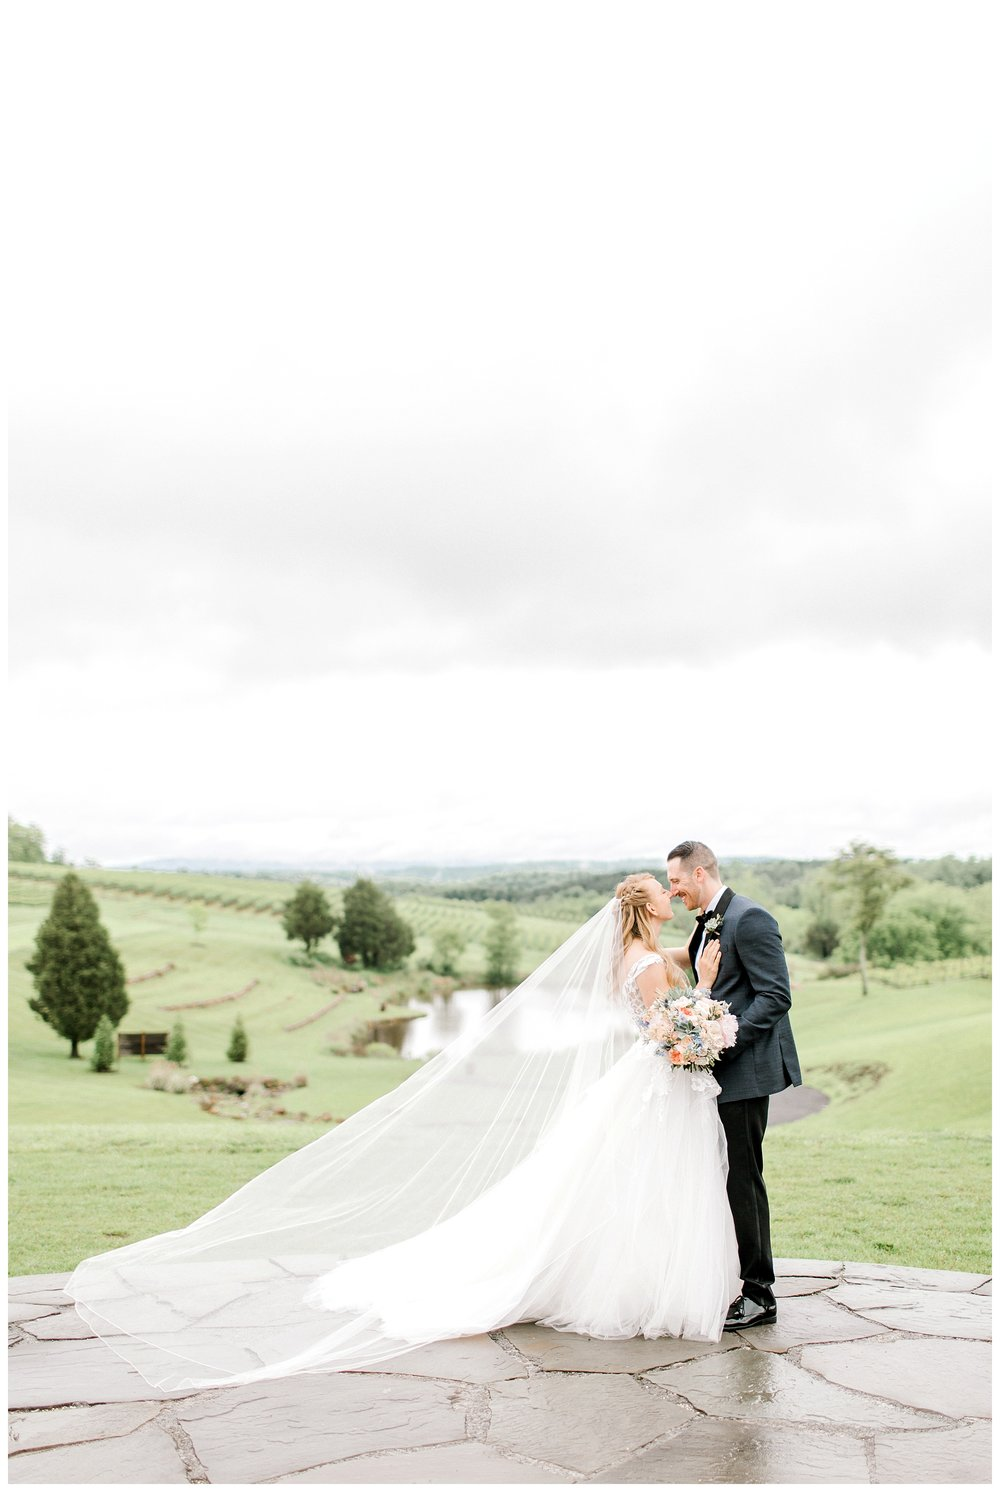 Stone Tower Winery Wedding Virginia Wedding Photographer Kir Tuben_0067.jpg